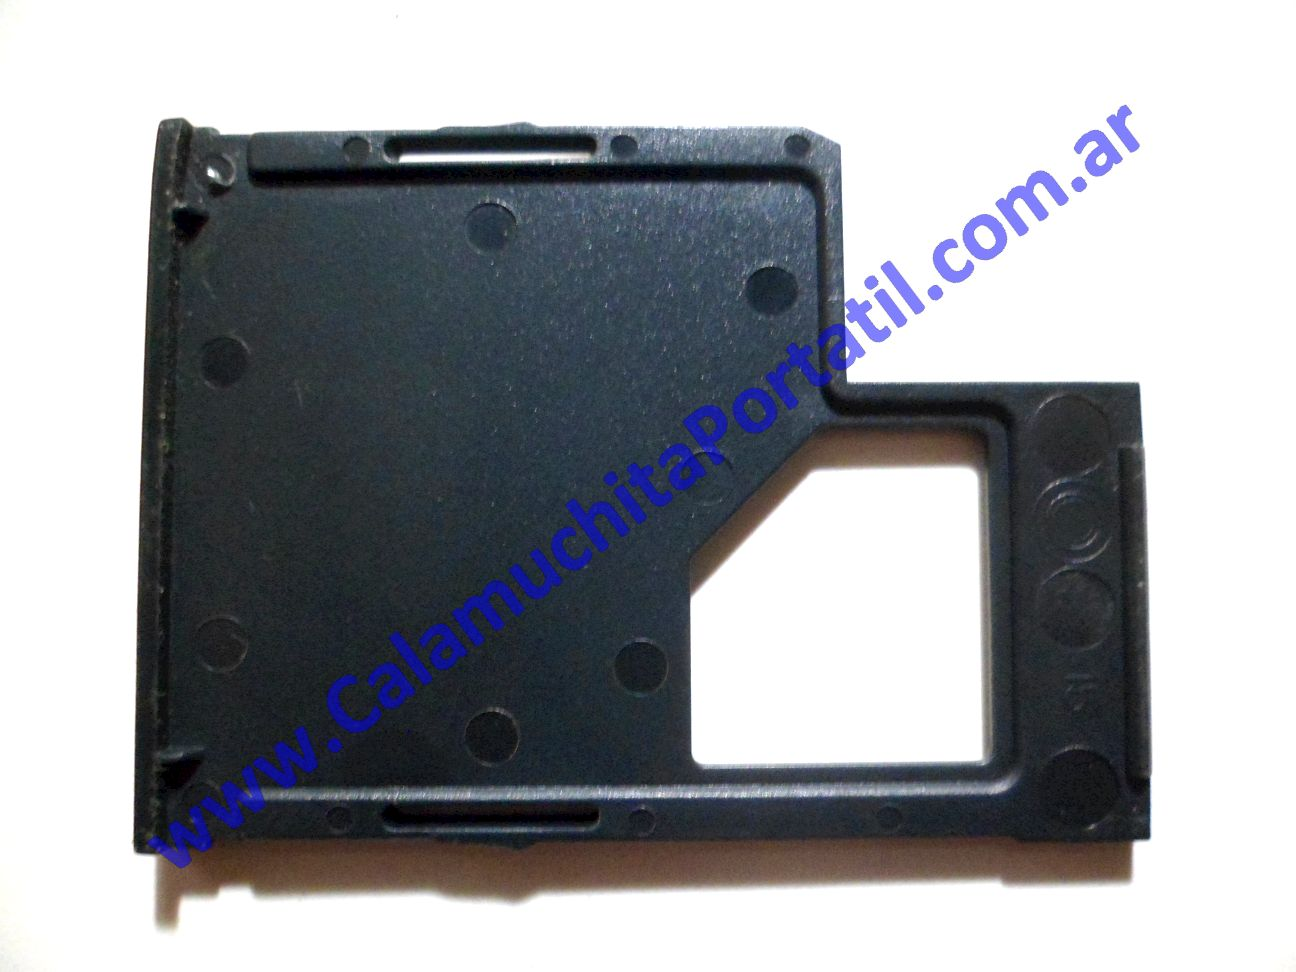 0105XPP Protector PCMCIA Acer Aspire 5720-4794 / ICL50